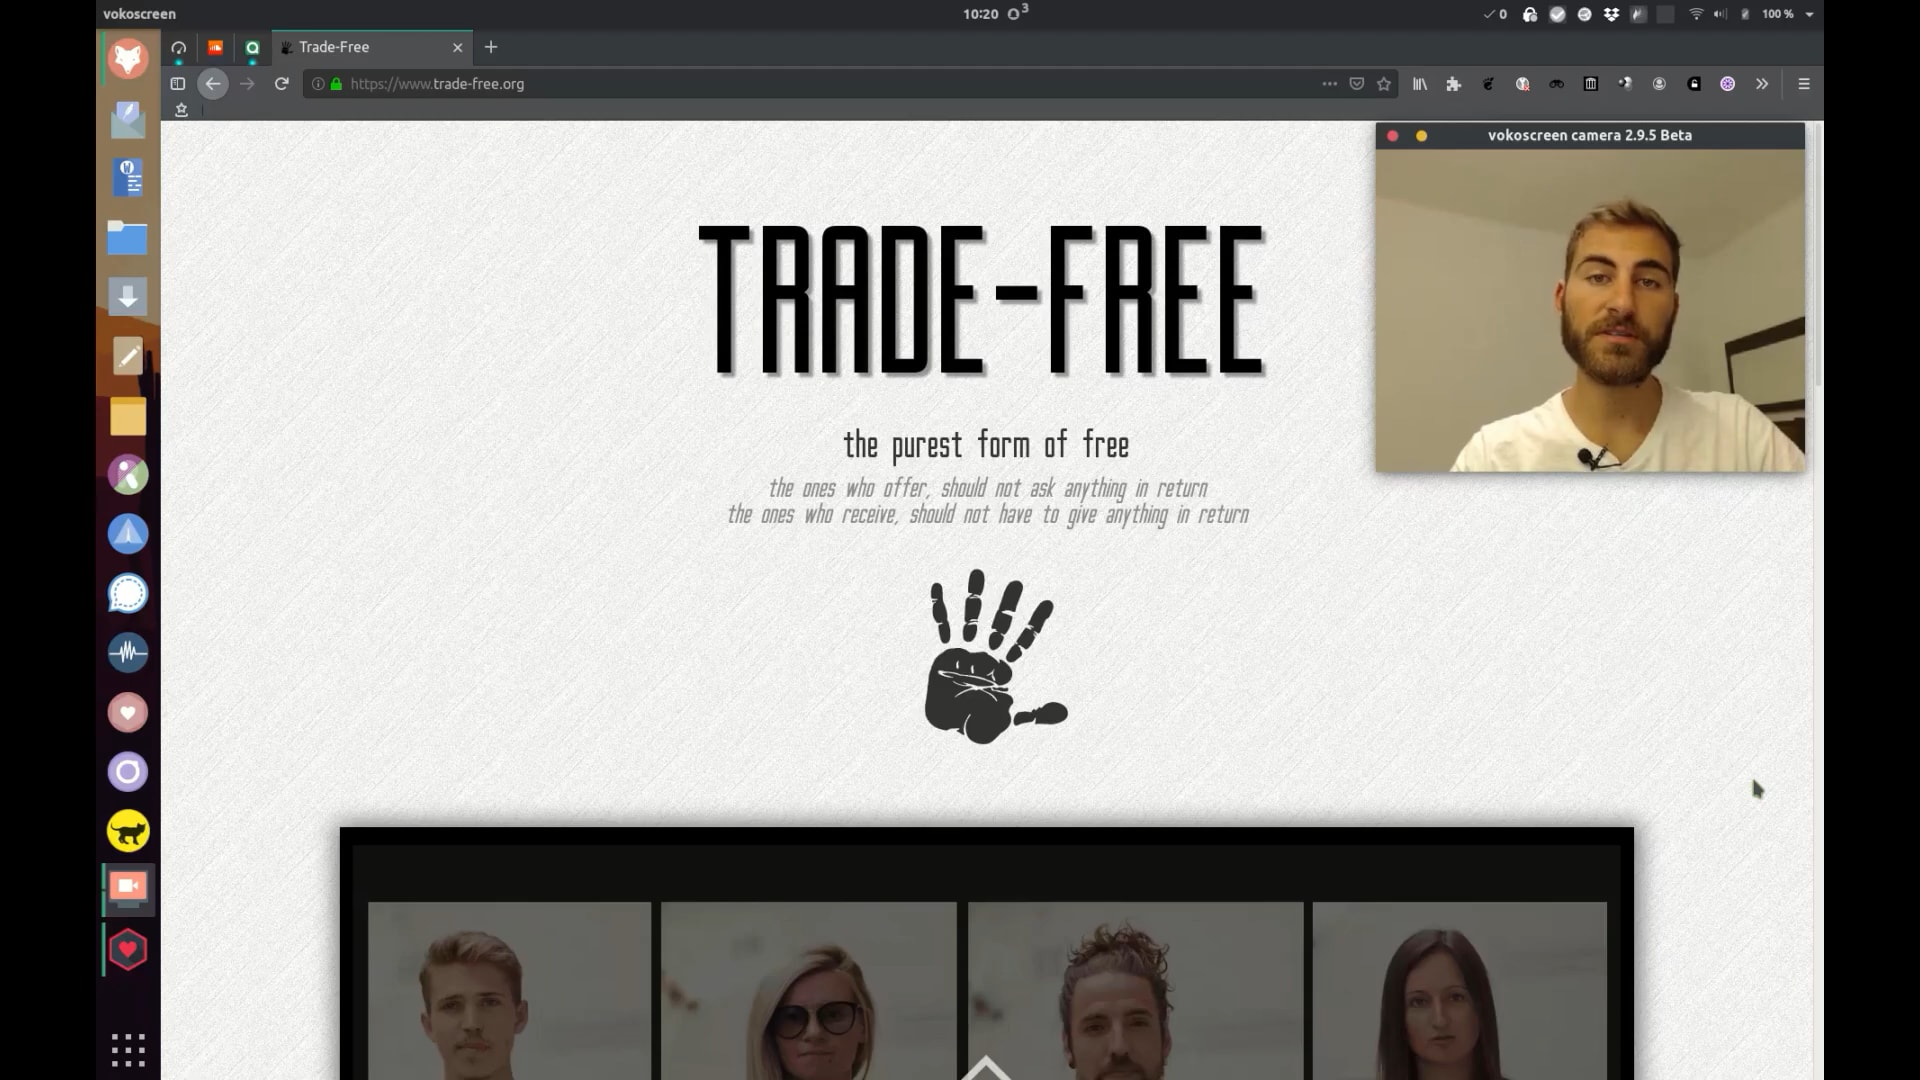 How to translate trade-free.org